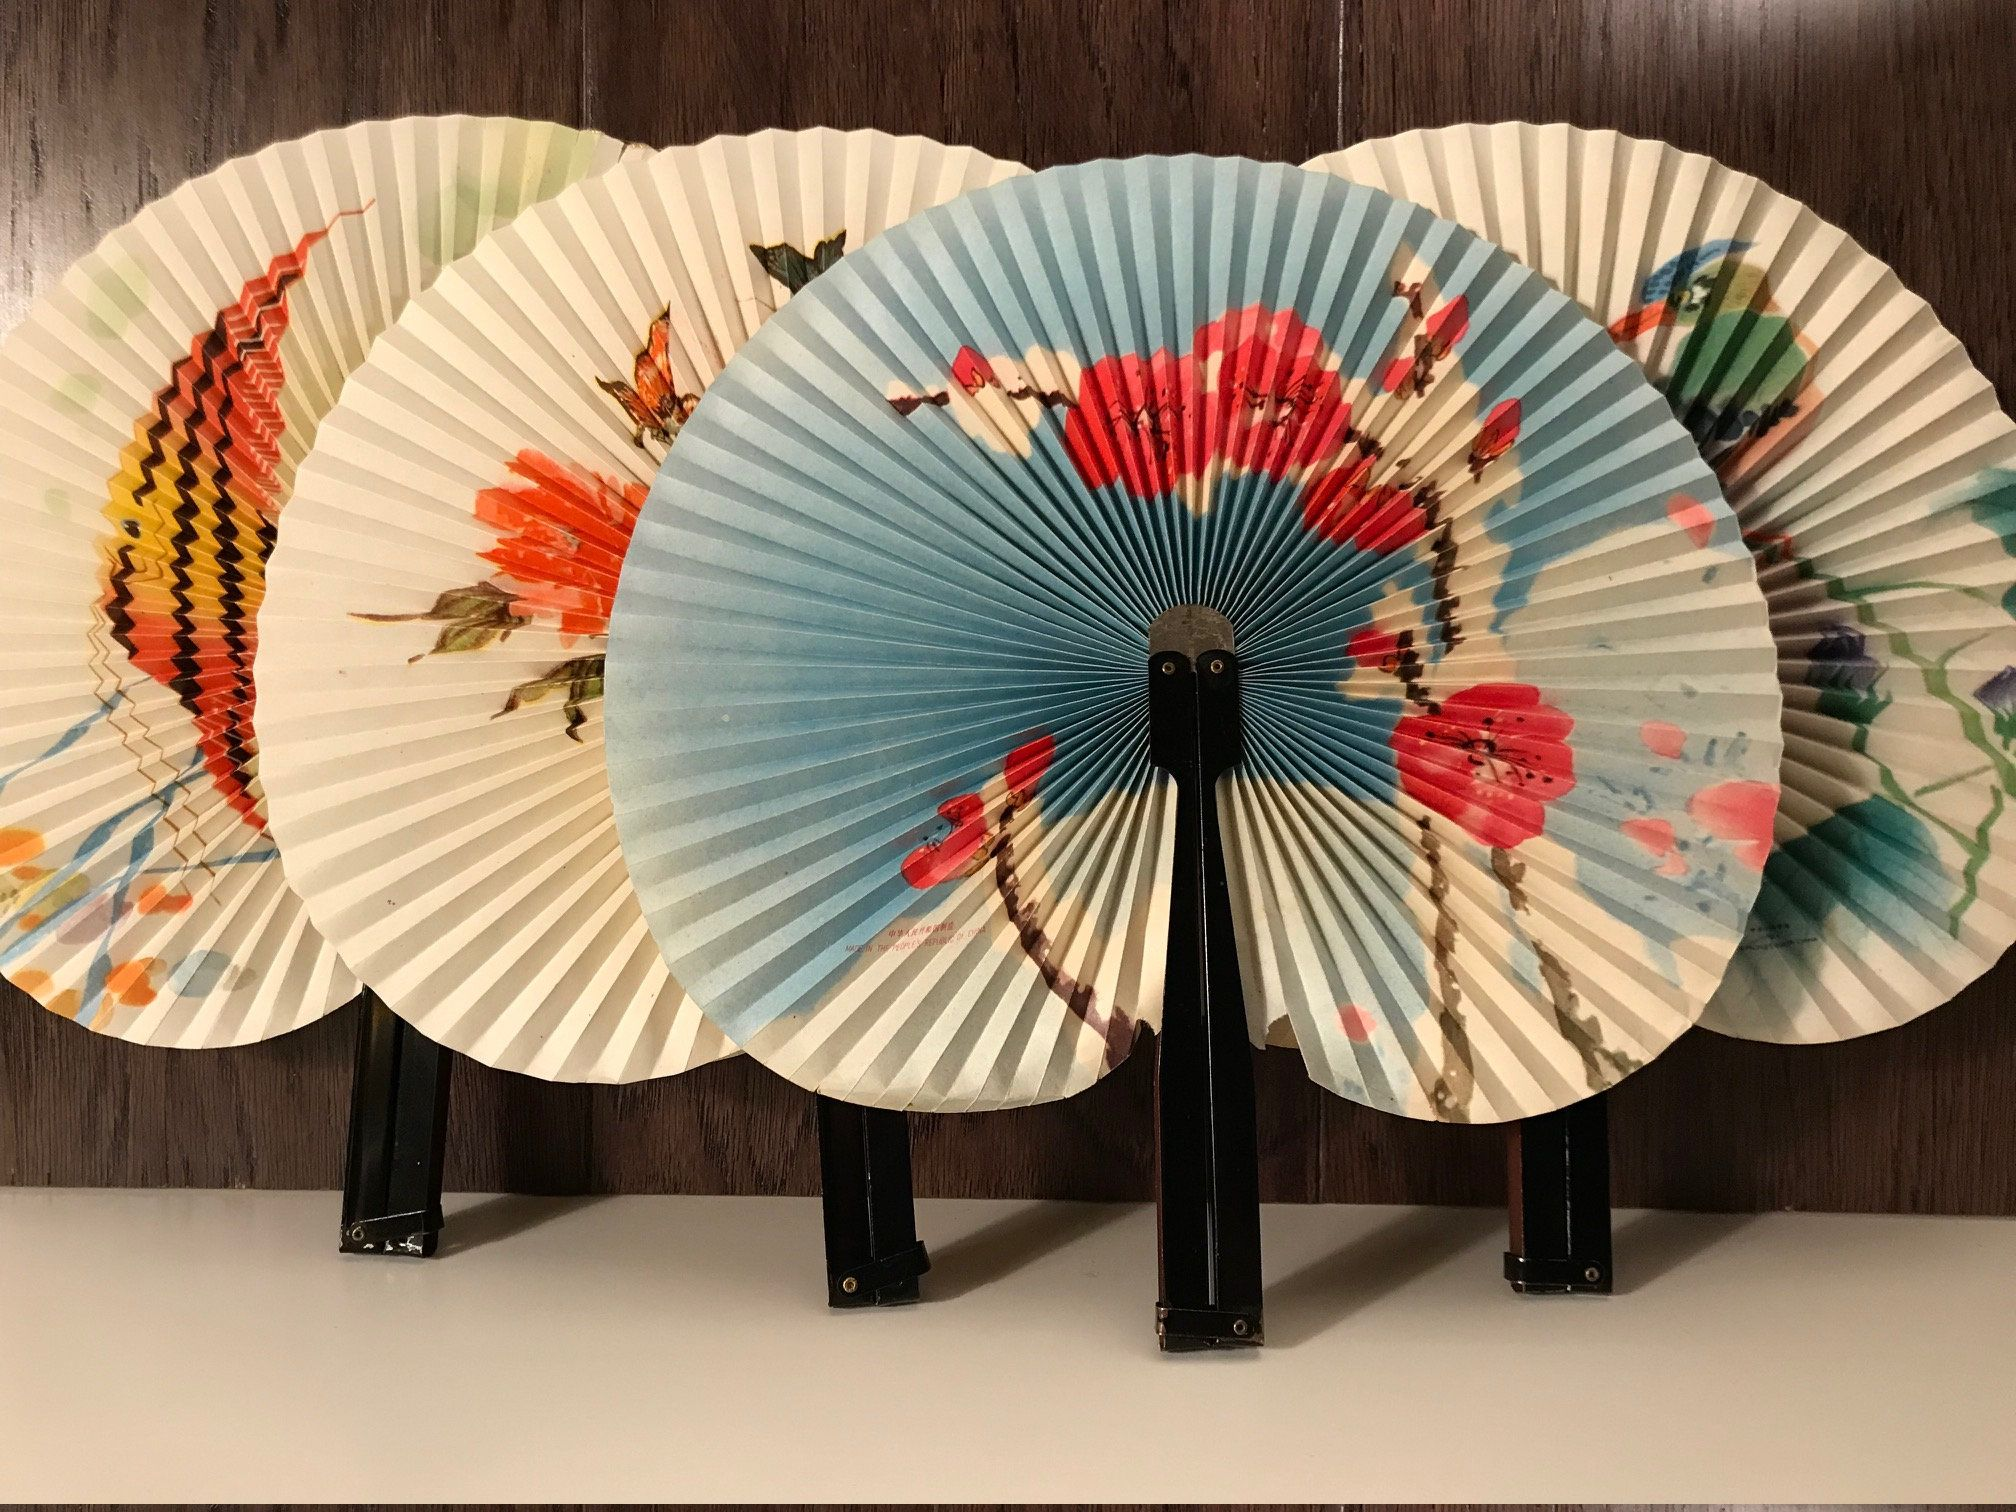 4 Asian Metal Folding Fans, Decorative Ornate Hand Held Paper Fans, Vintage Chinese Home Decor, Beautiful Far East Collectibles, Ships Free by ThePeppySquid on Etsy